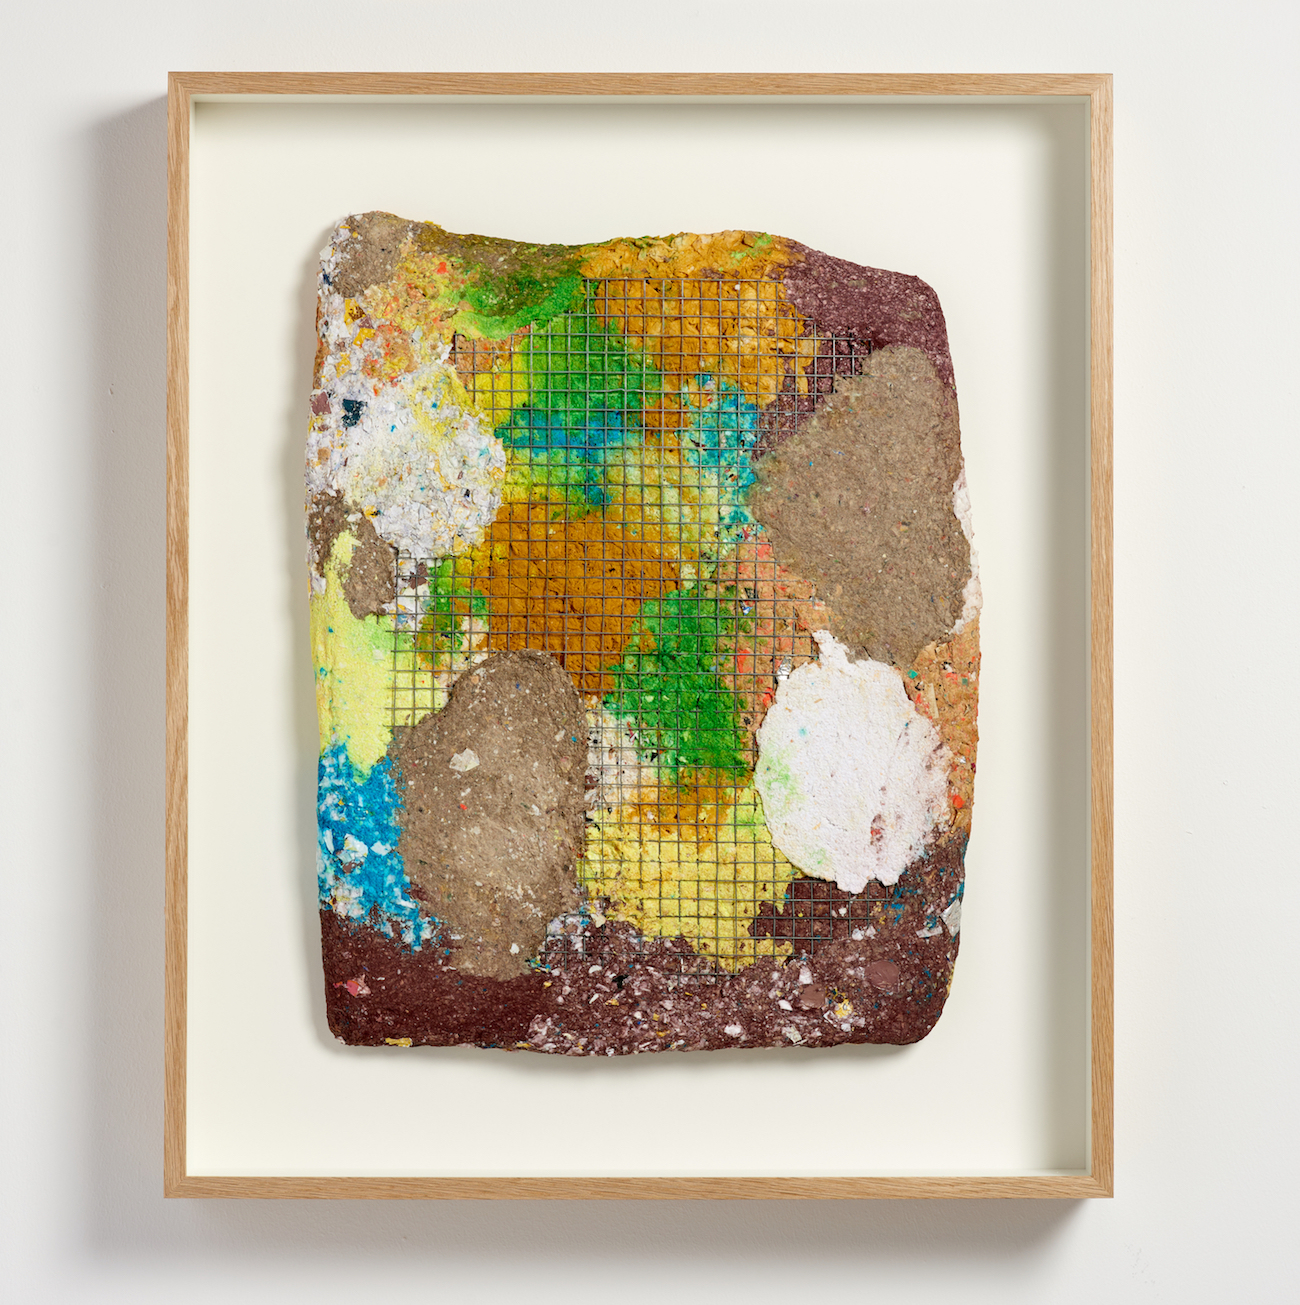 Ludovica Gioscia, Temporal Tablet 7, 2019. Mixed media*. Framed. 75 x 63.5 x 9 cm.